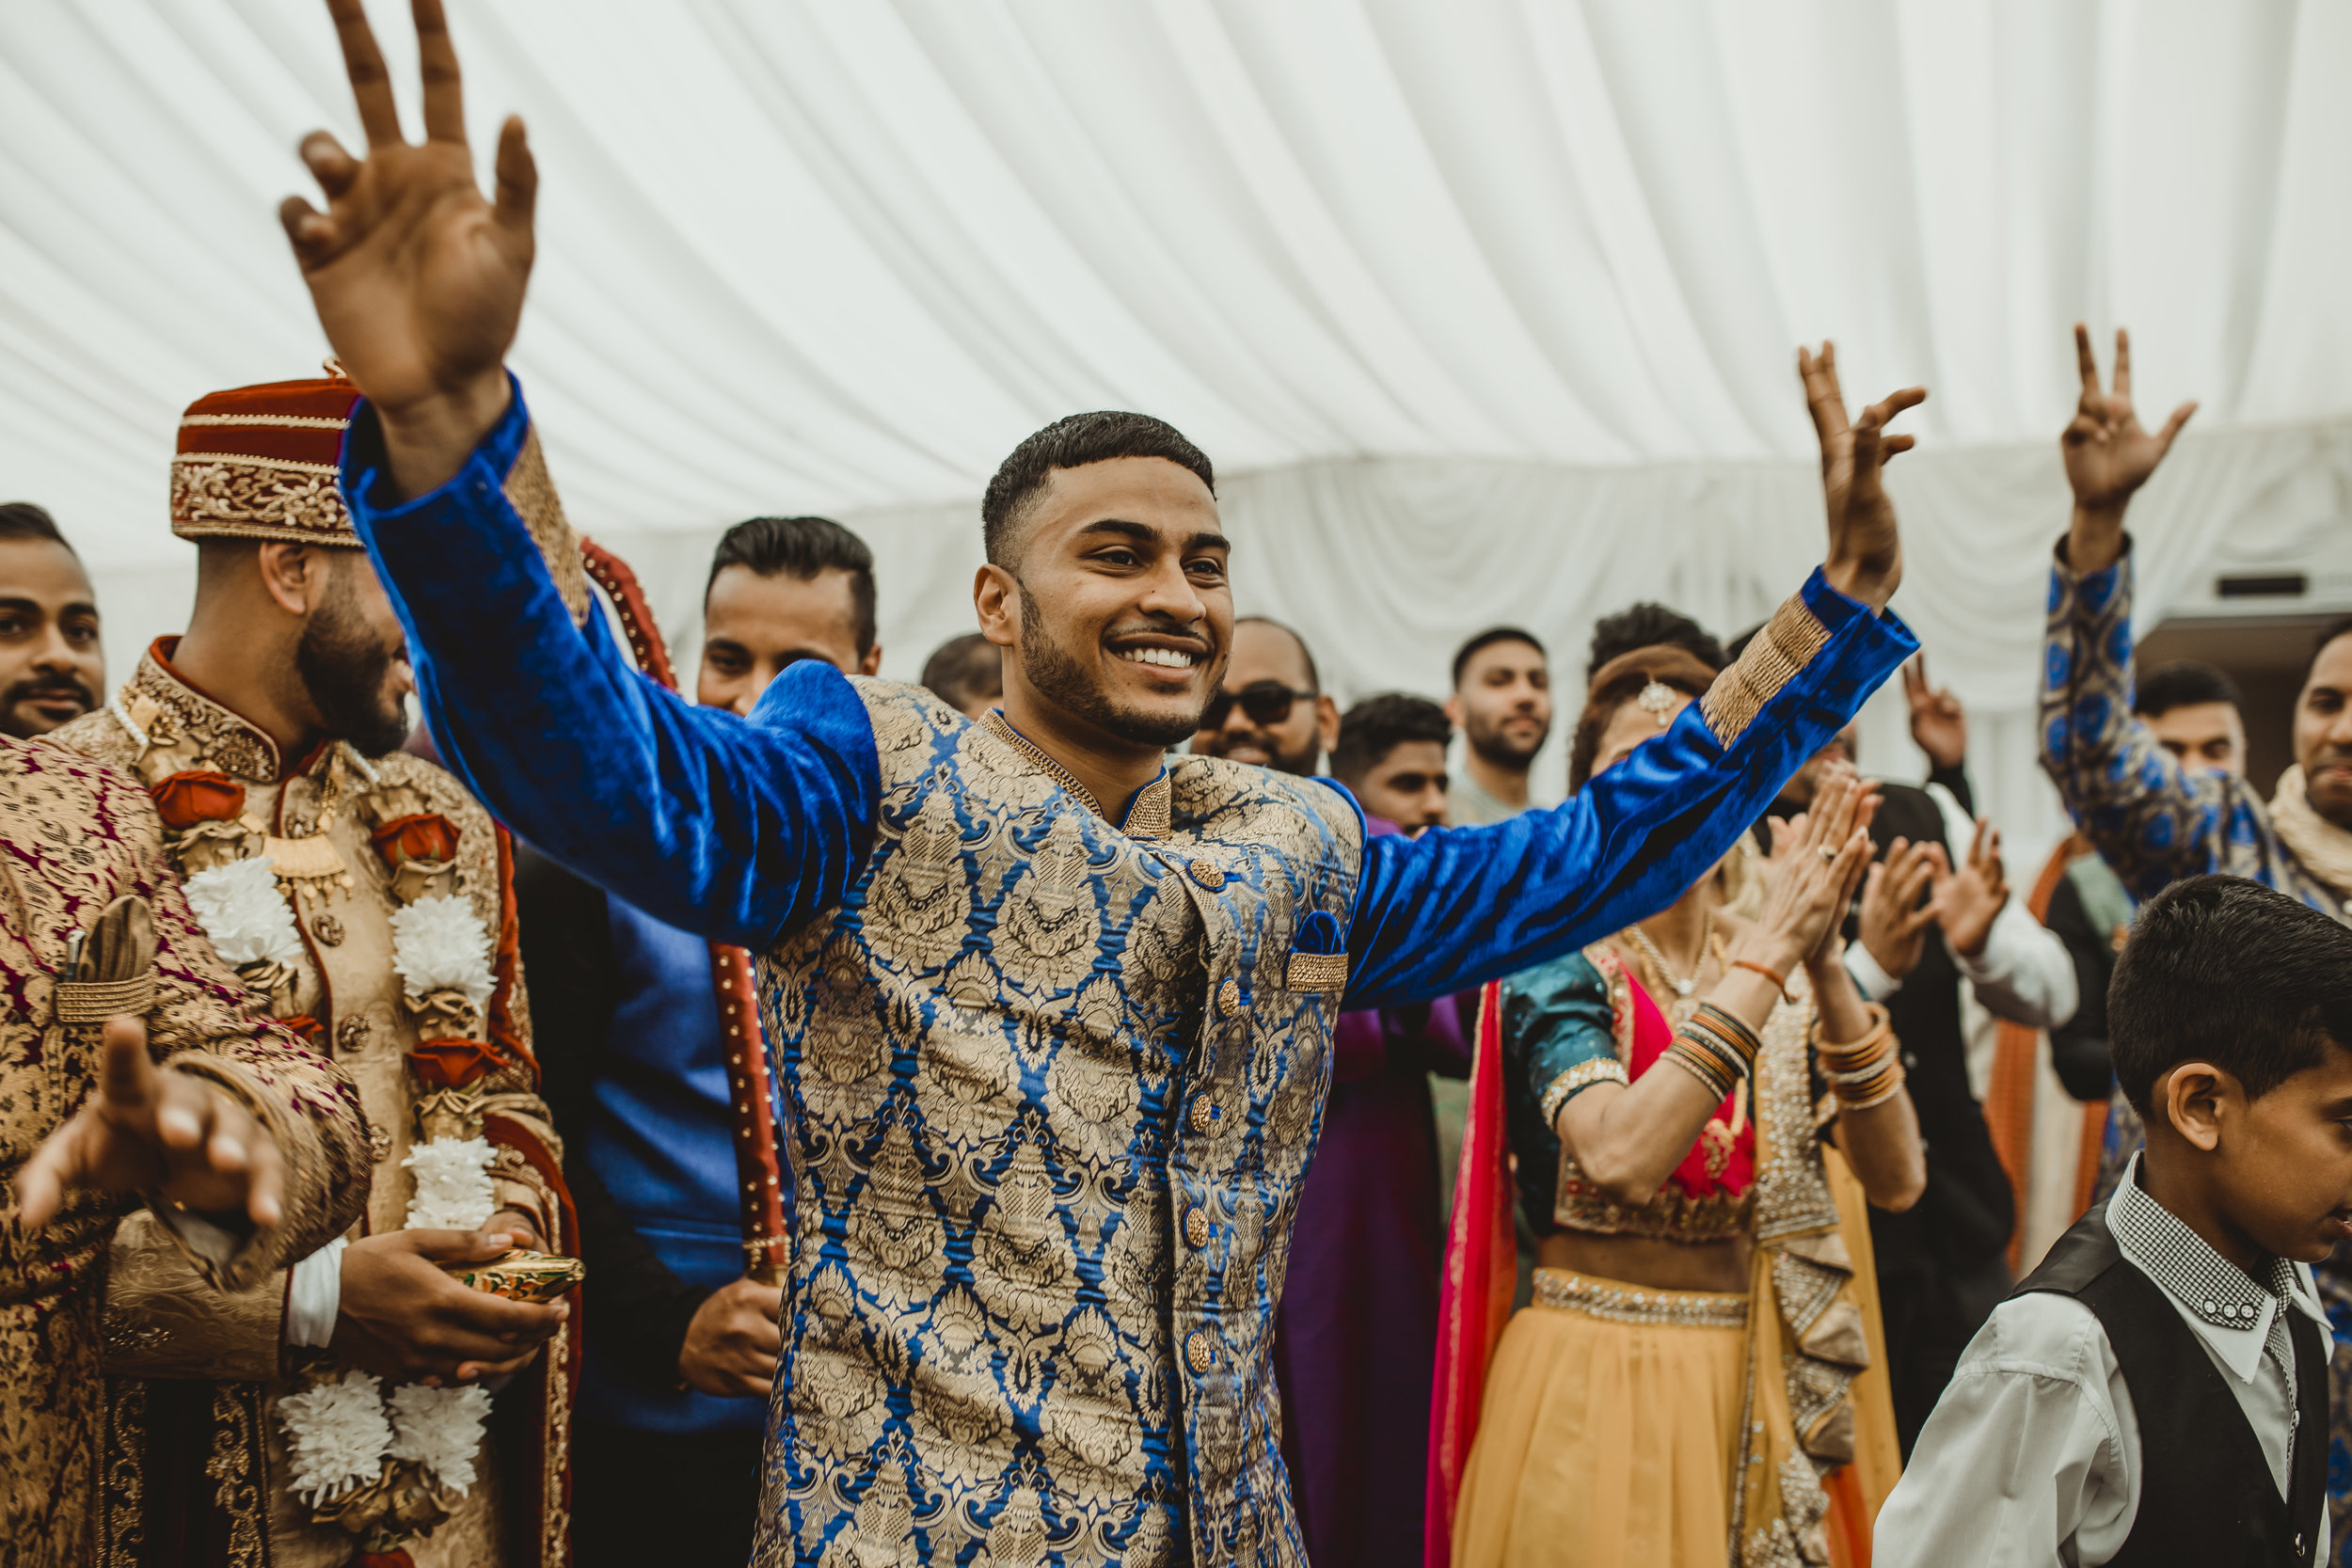 N&J_MILTON_KEYNES_WEDDING_LONDON_PHOTOGRAPHER_ASIAN_WEDDING-358.JPG